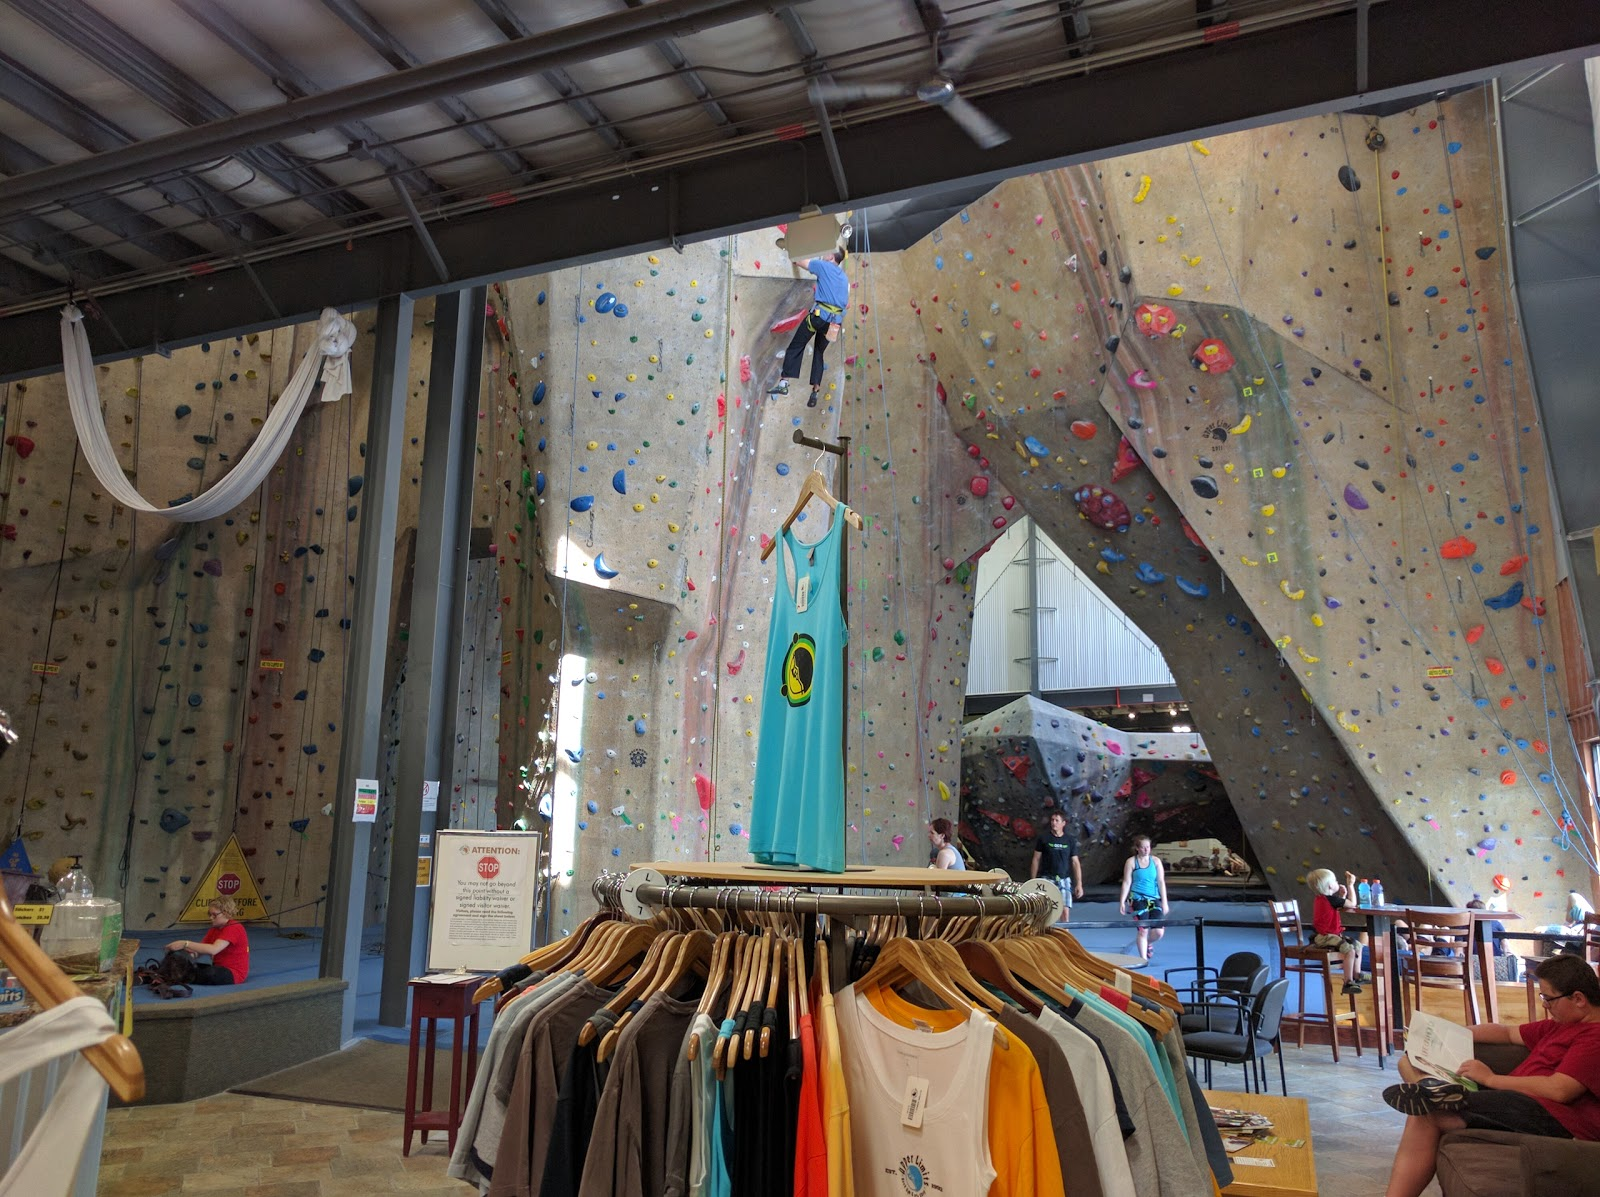 Upper Limits Indoor Rock Climbing Gym - Maryland Heights - photo